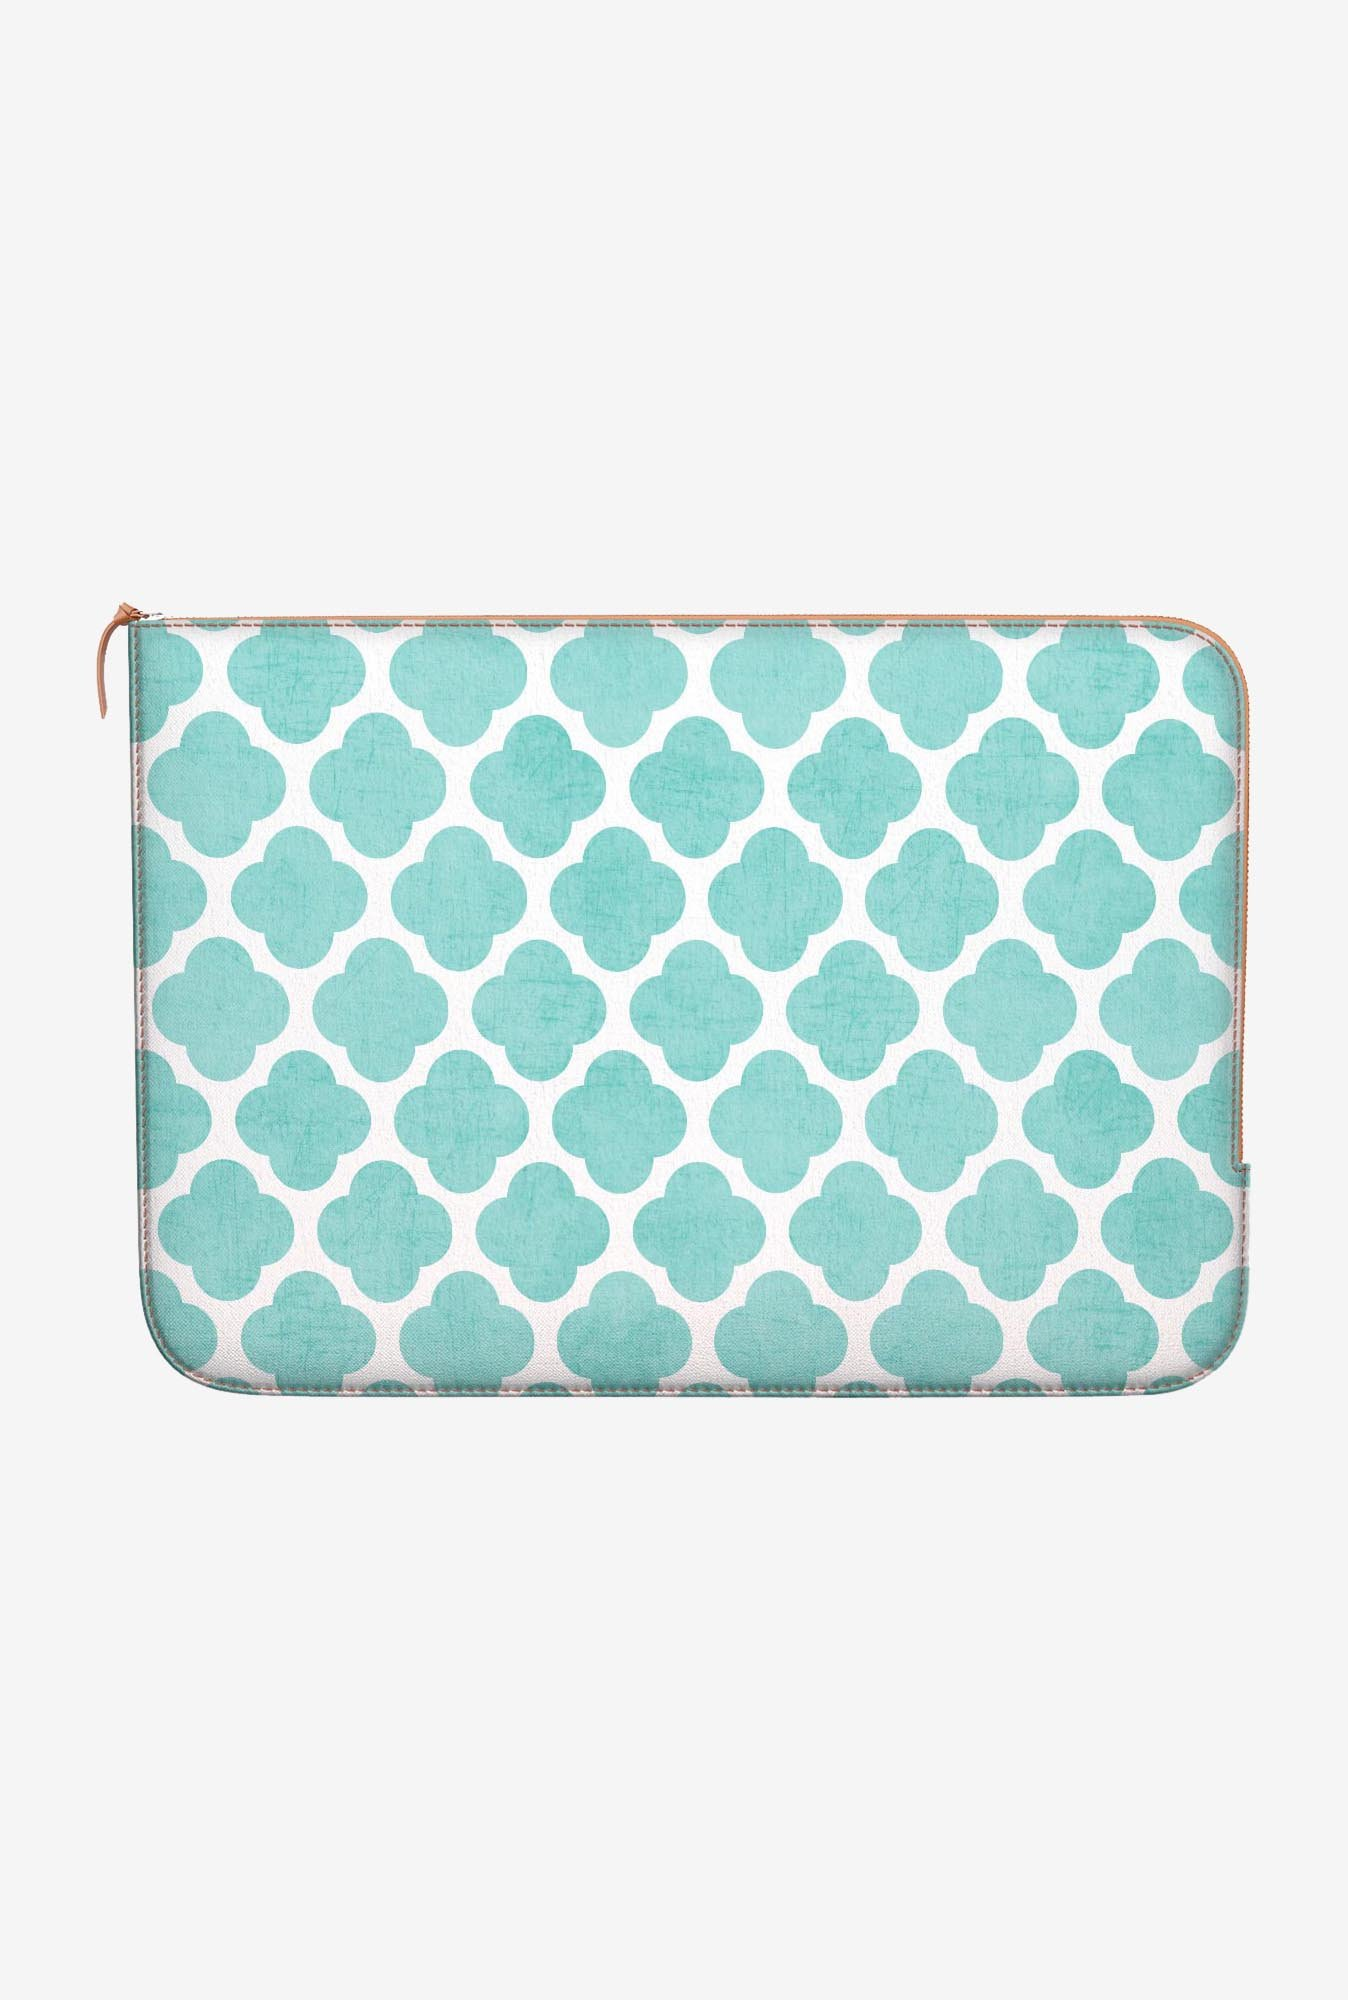 DailyObjects Teal Clover MacBook Pro 15 Zippered Sleeve